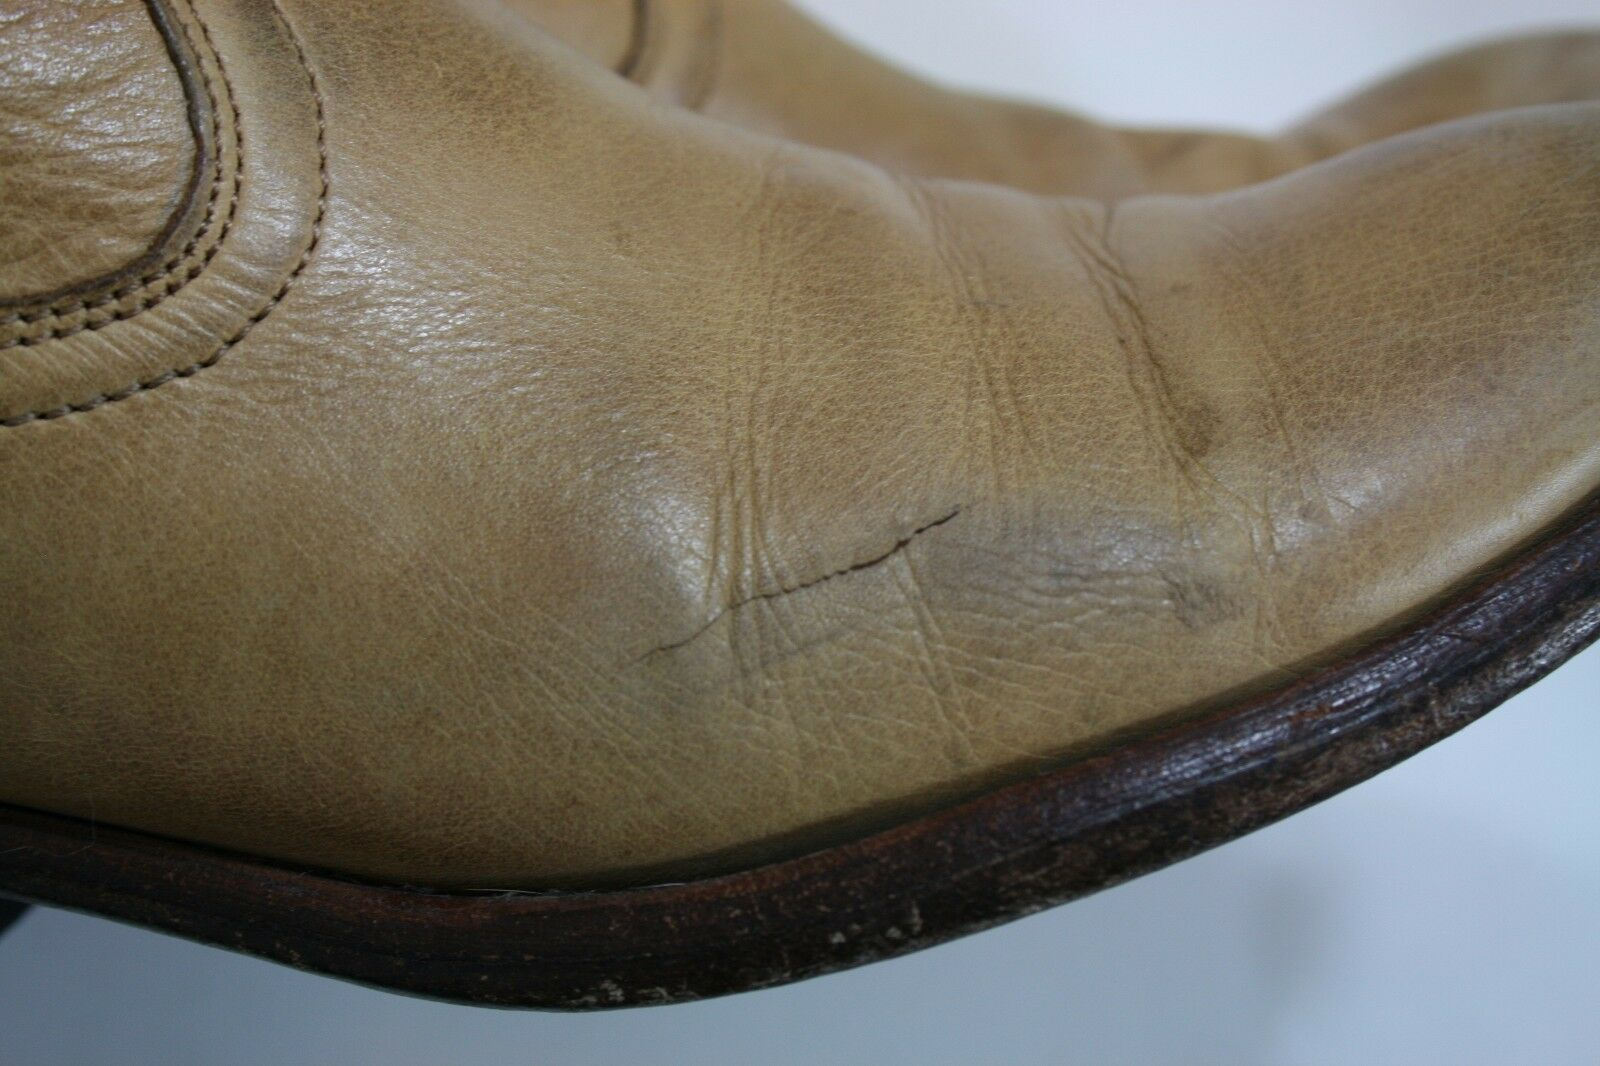 FRYE SHOES CARSON PULL ON ON ON BOOTS LIGHT TAN DISTRESSED LEATHER 77685 7.5  378 f251df